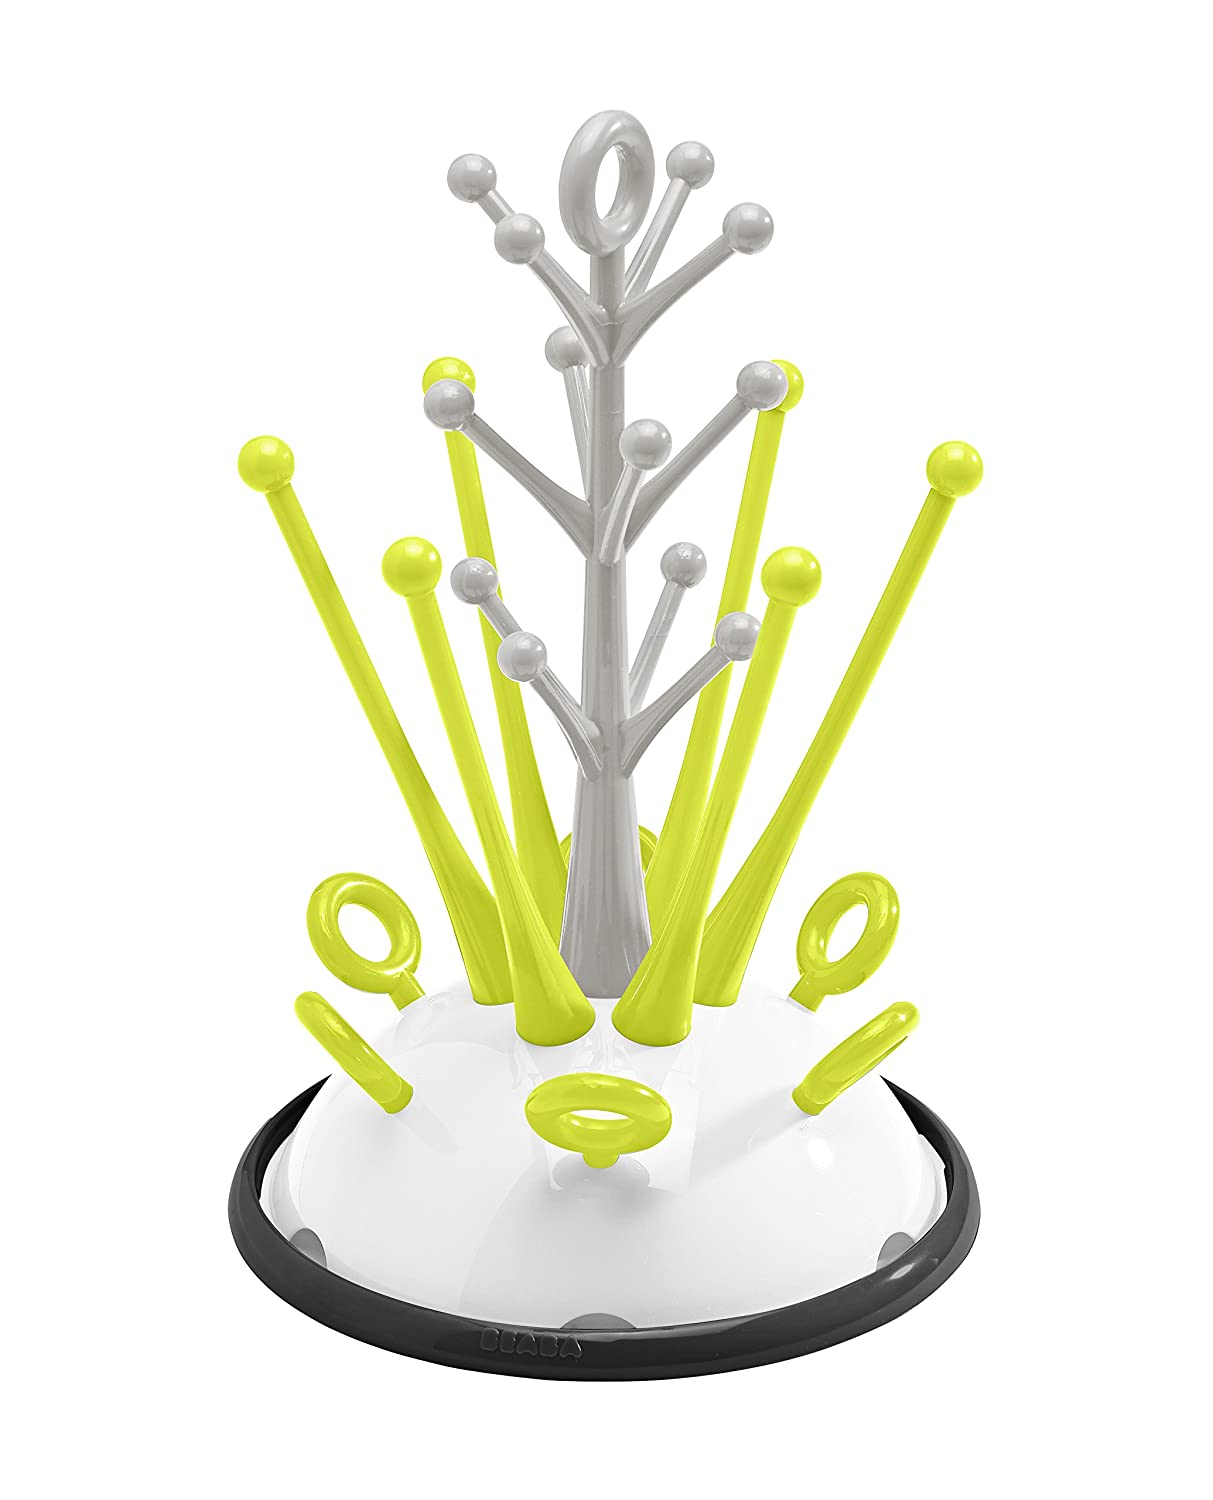 BEABA Bottle Draining Rack and Accessories (Neon) 911556